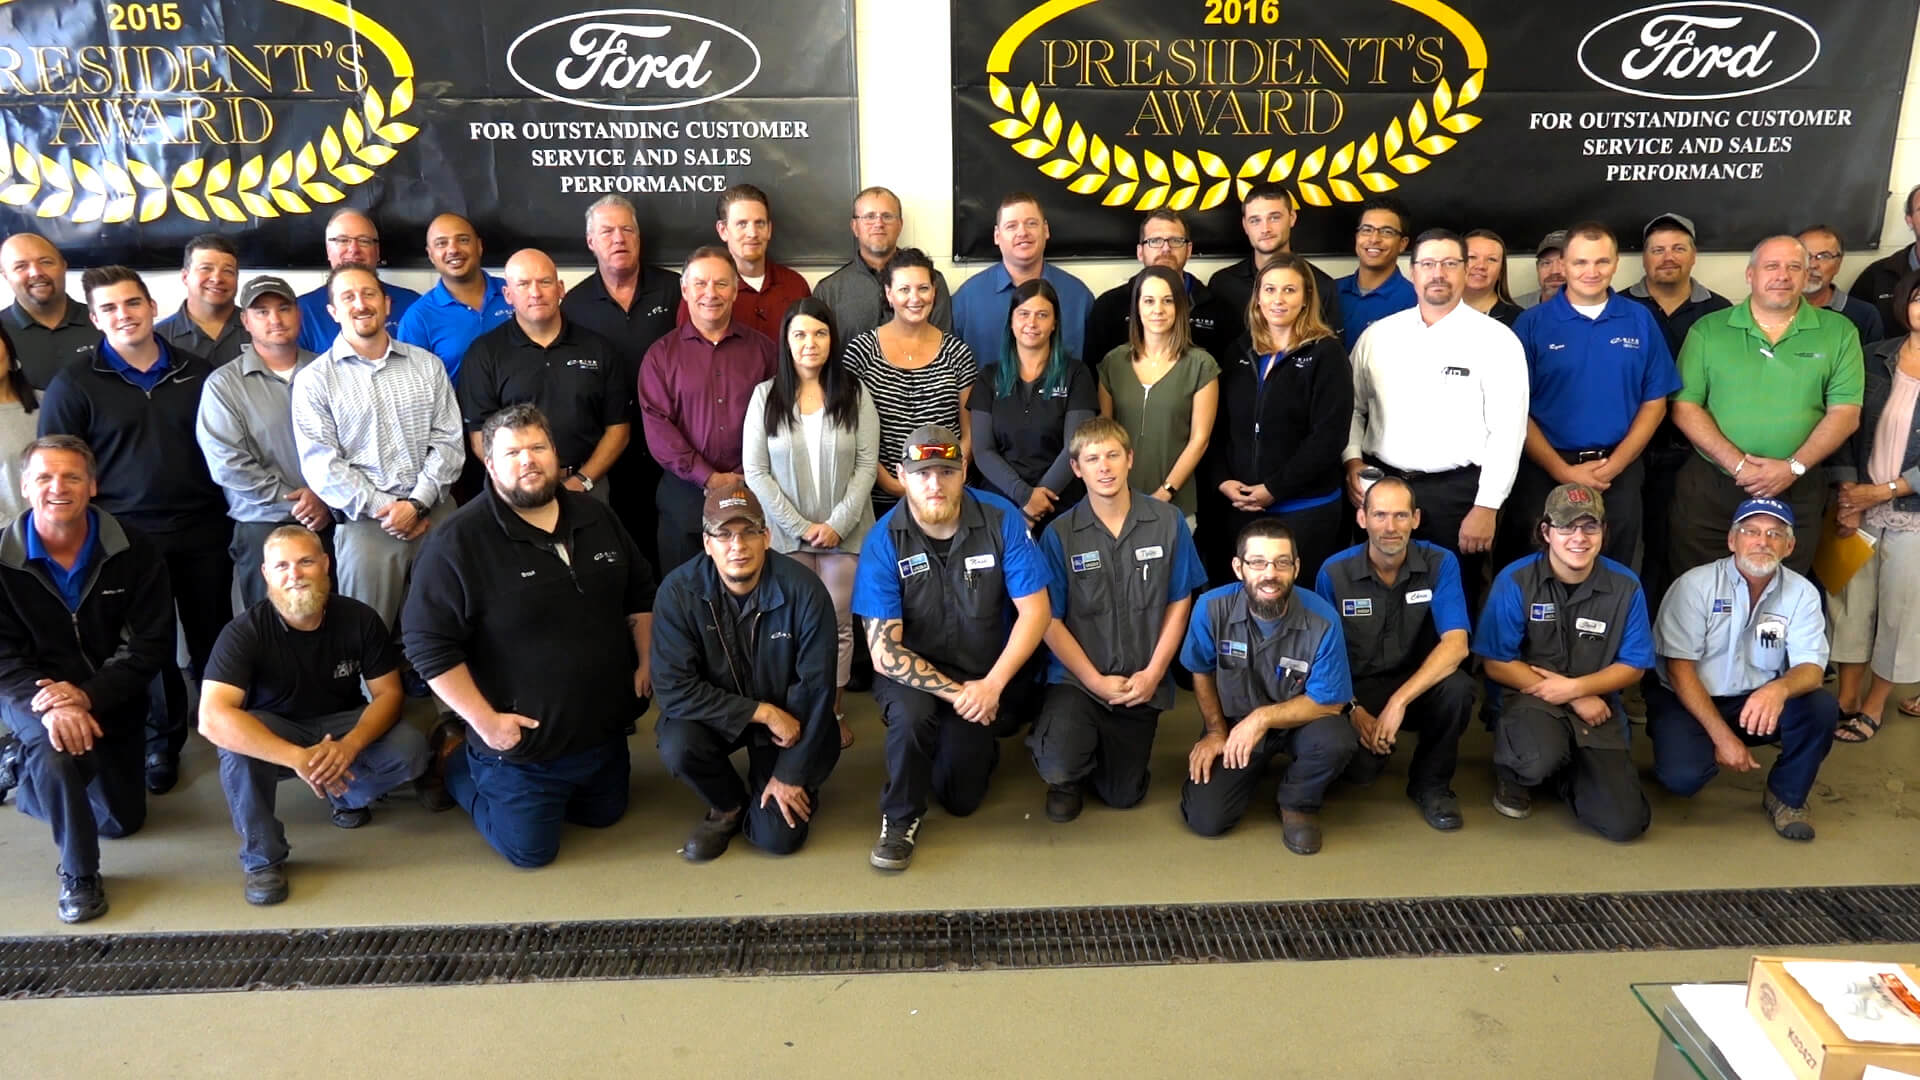 The Eide Ford team in Bismarck